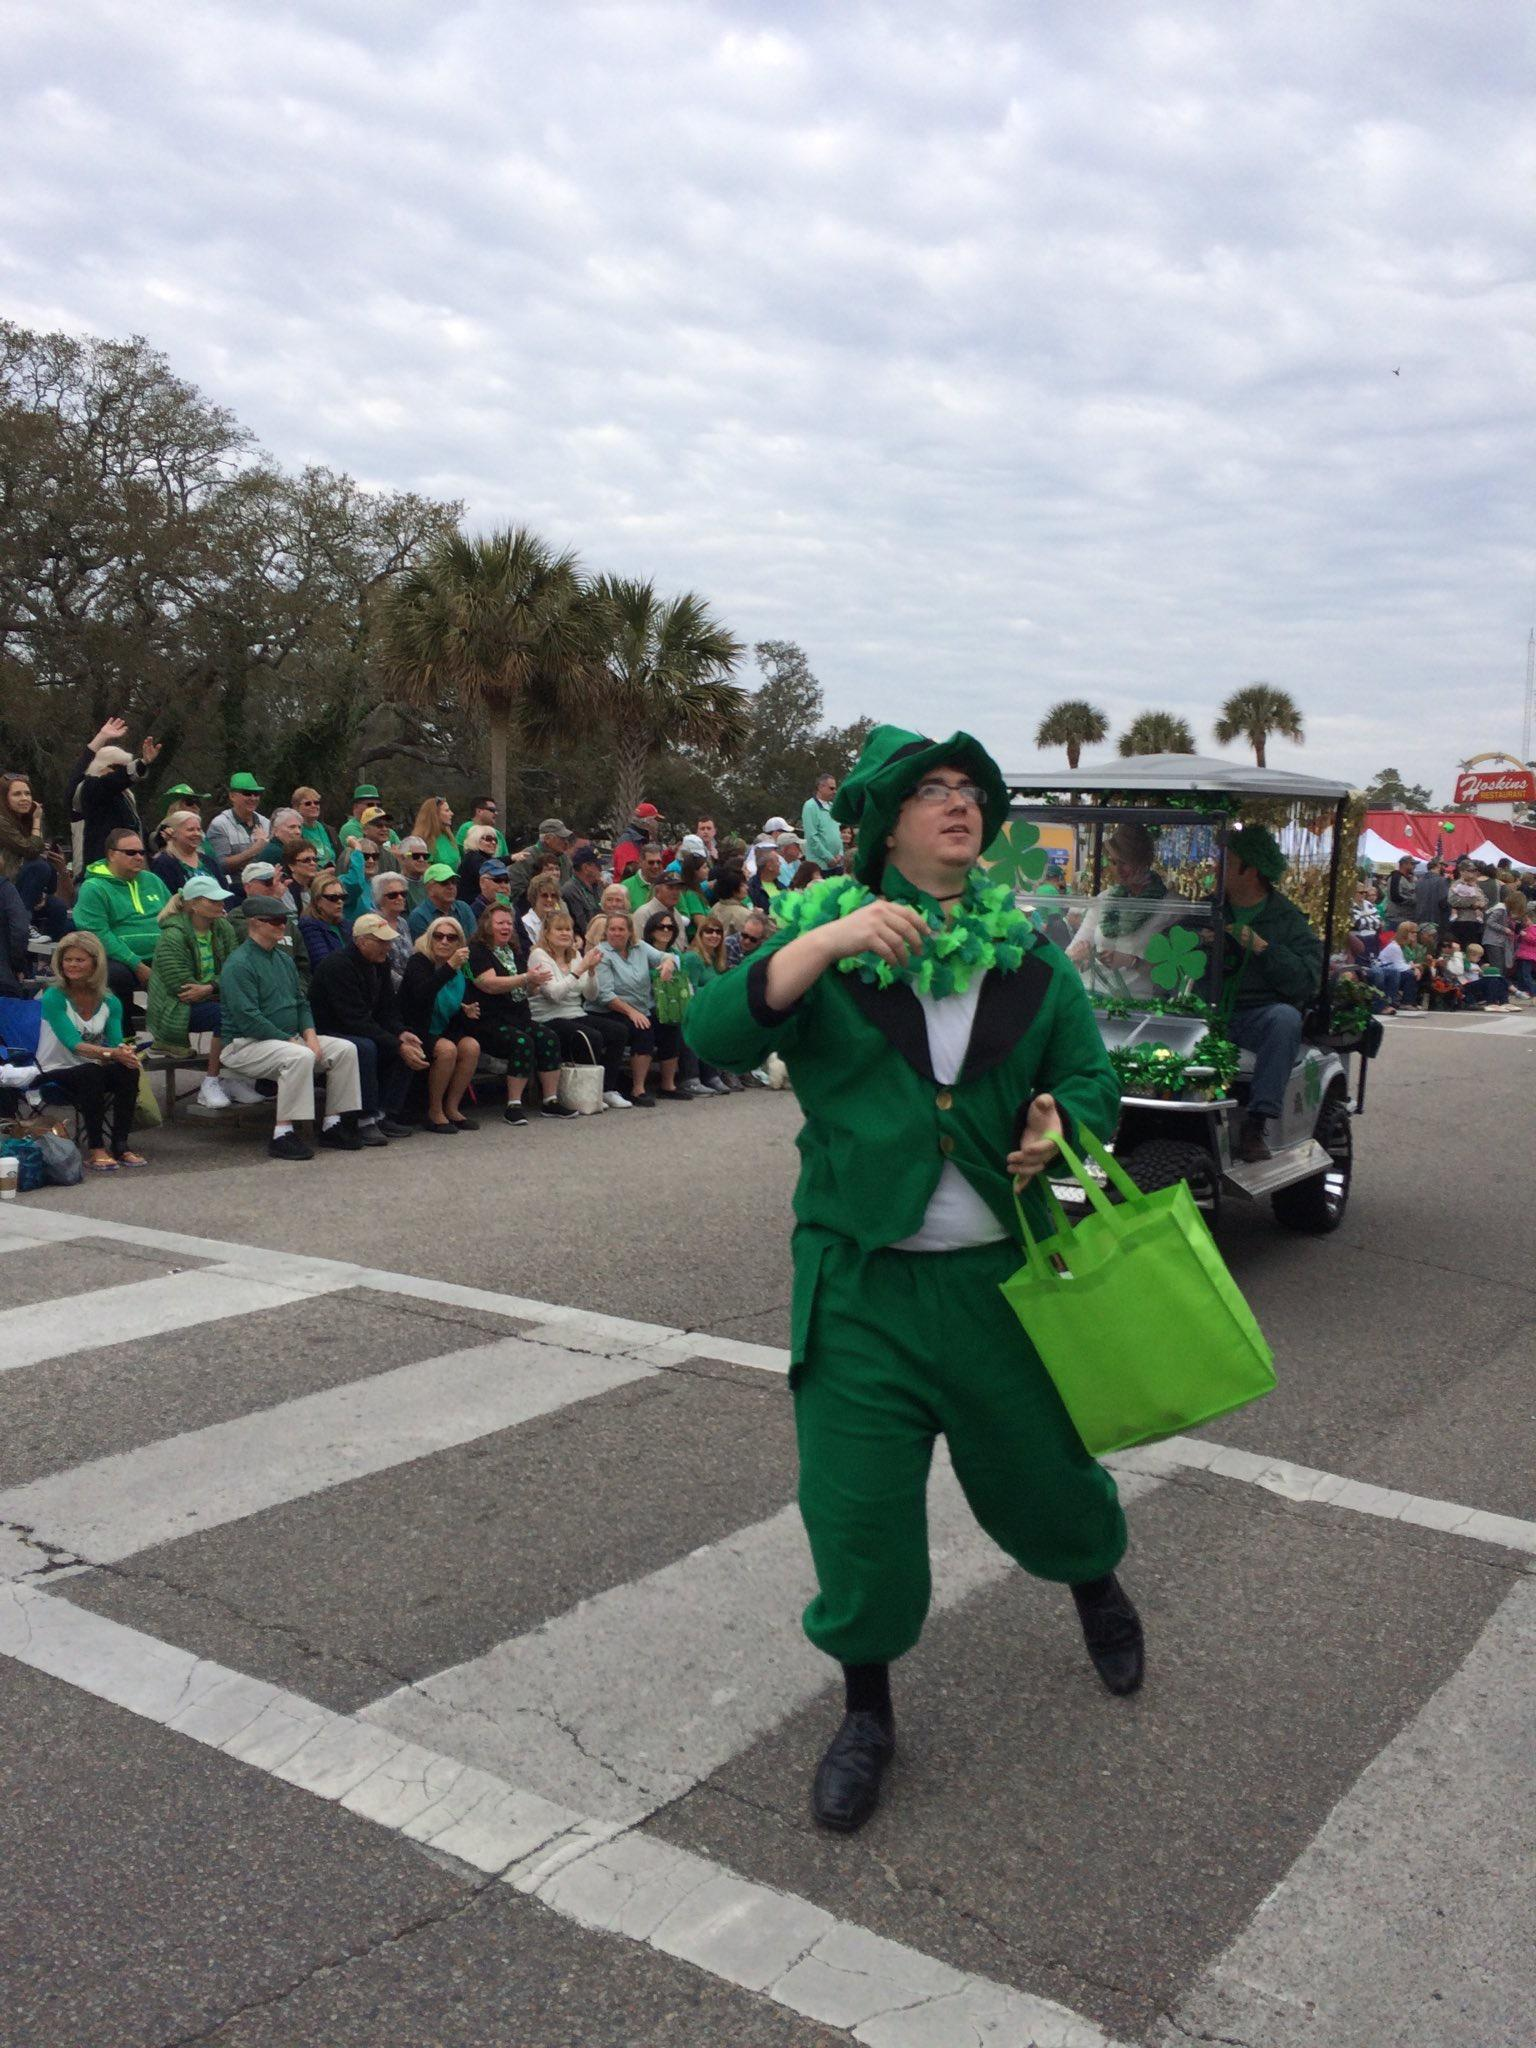 WATCH - North Myrtle Beach\'s 30th Annual St. Patrick\'s Day Parade | WPDE